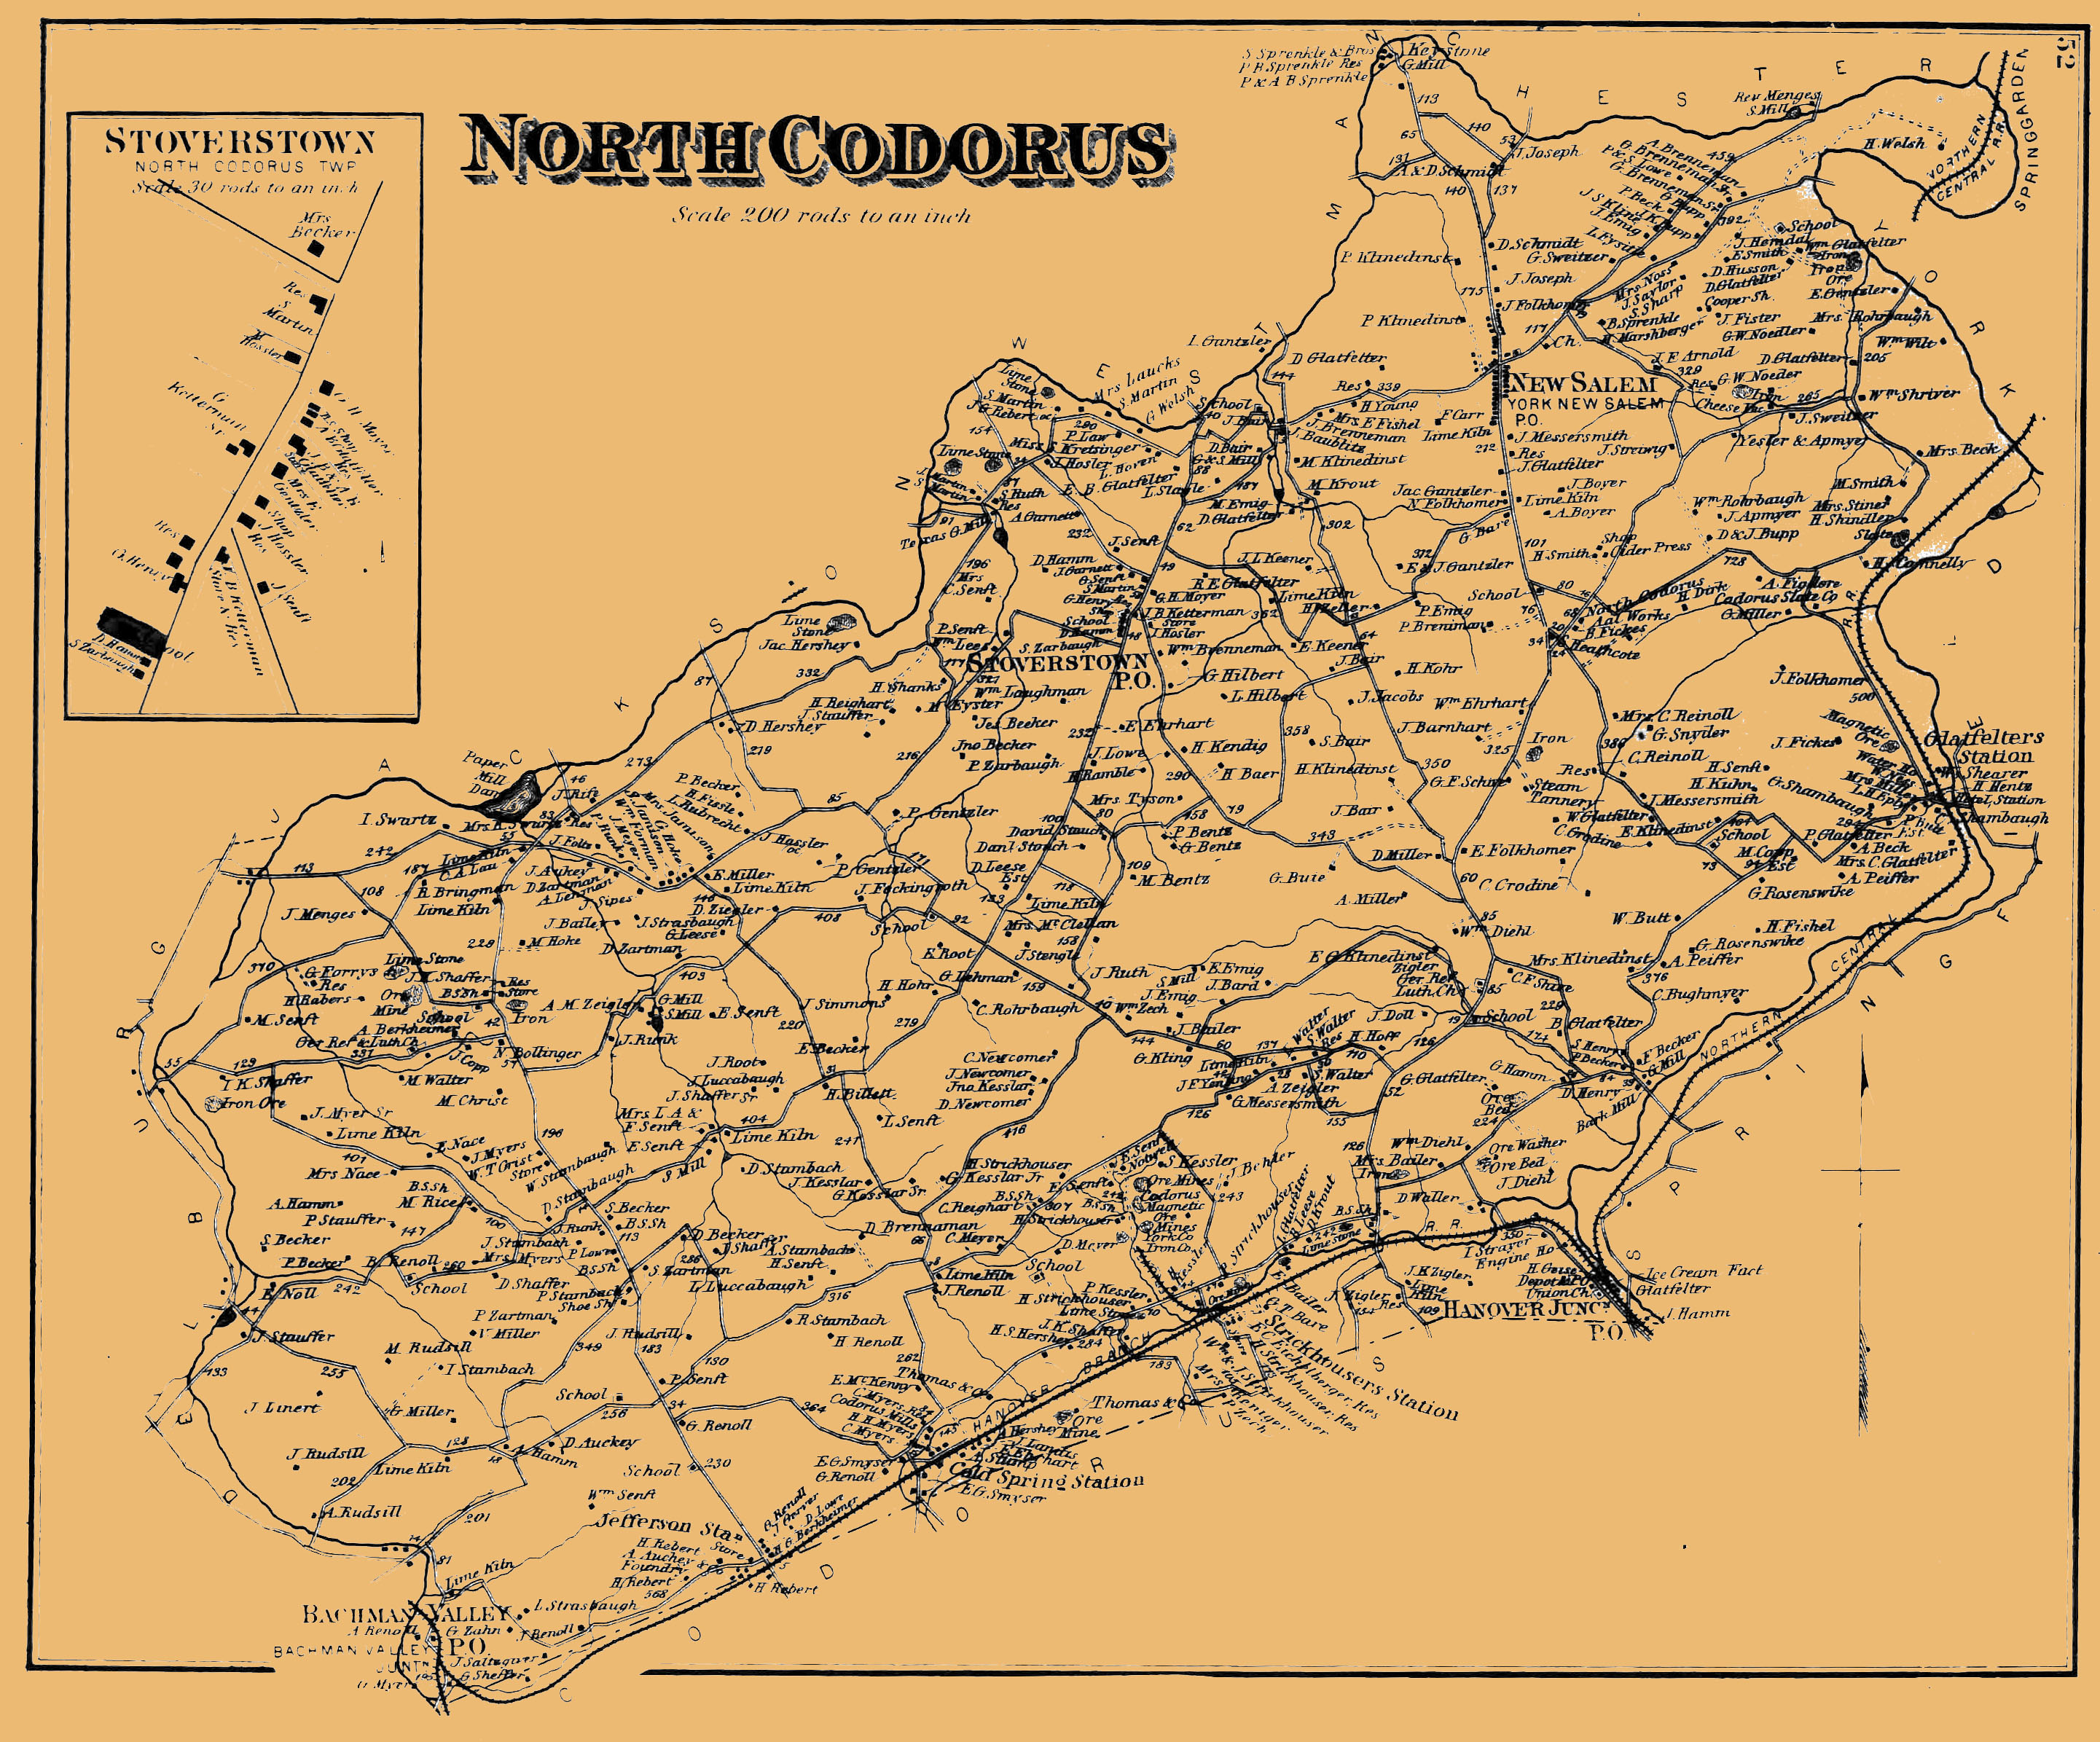 York County Landowner Resources on richmond pa map, dauphin county pa map, york pa street map, berks county pa map, red lion pa map, lebanon pa map, york pennsylvania pa, northumberland county pa map, virginia pa map, york pa and surrounding areas map, ny nj and pa map, adams county pa map, cumberland county pa map, york city pa map, york pa fairgrounds map, camden pa map, hanover pa map, schuylkill river pa map, central county tn map, southeast ga county map,